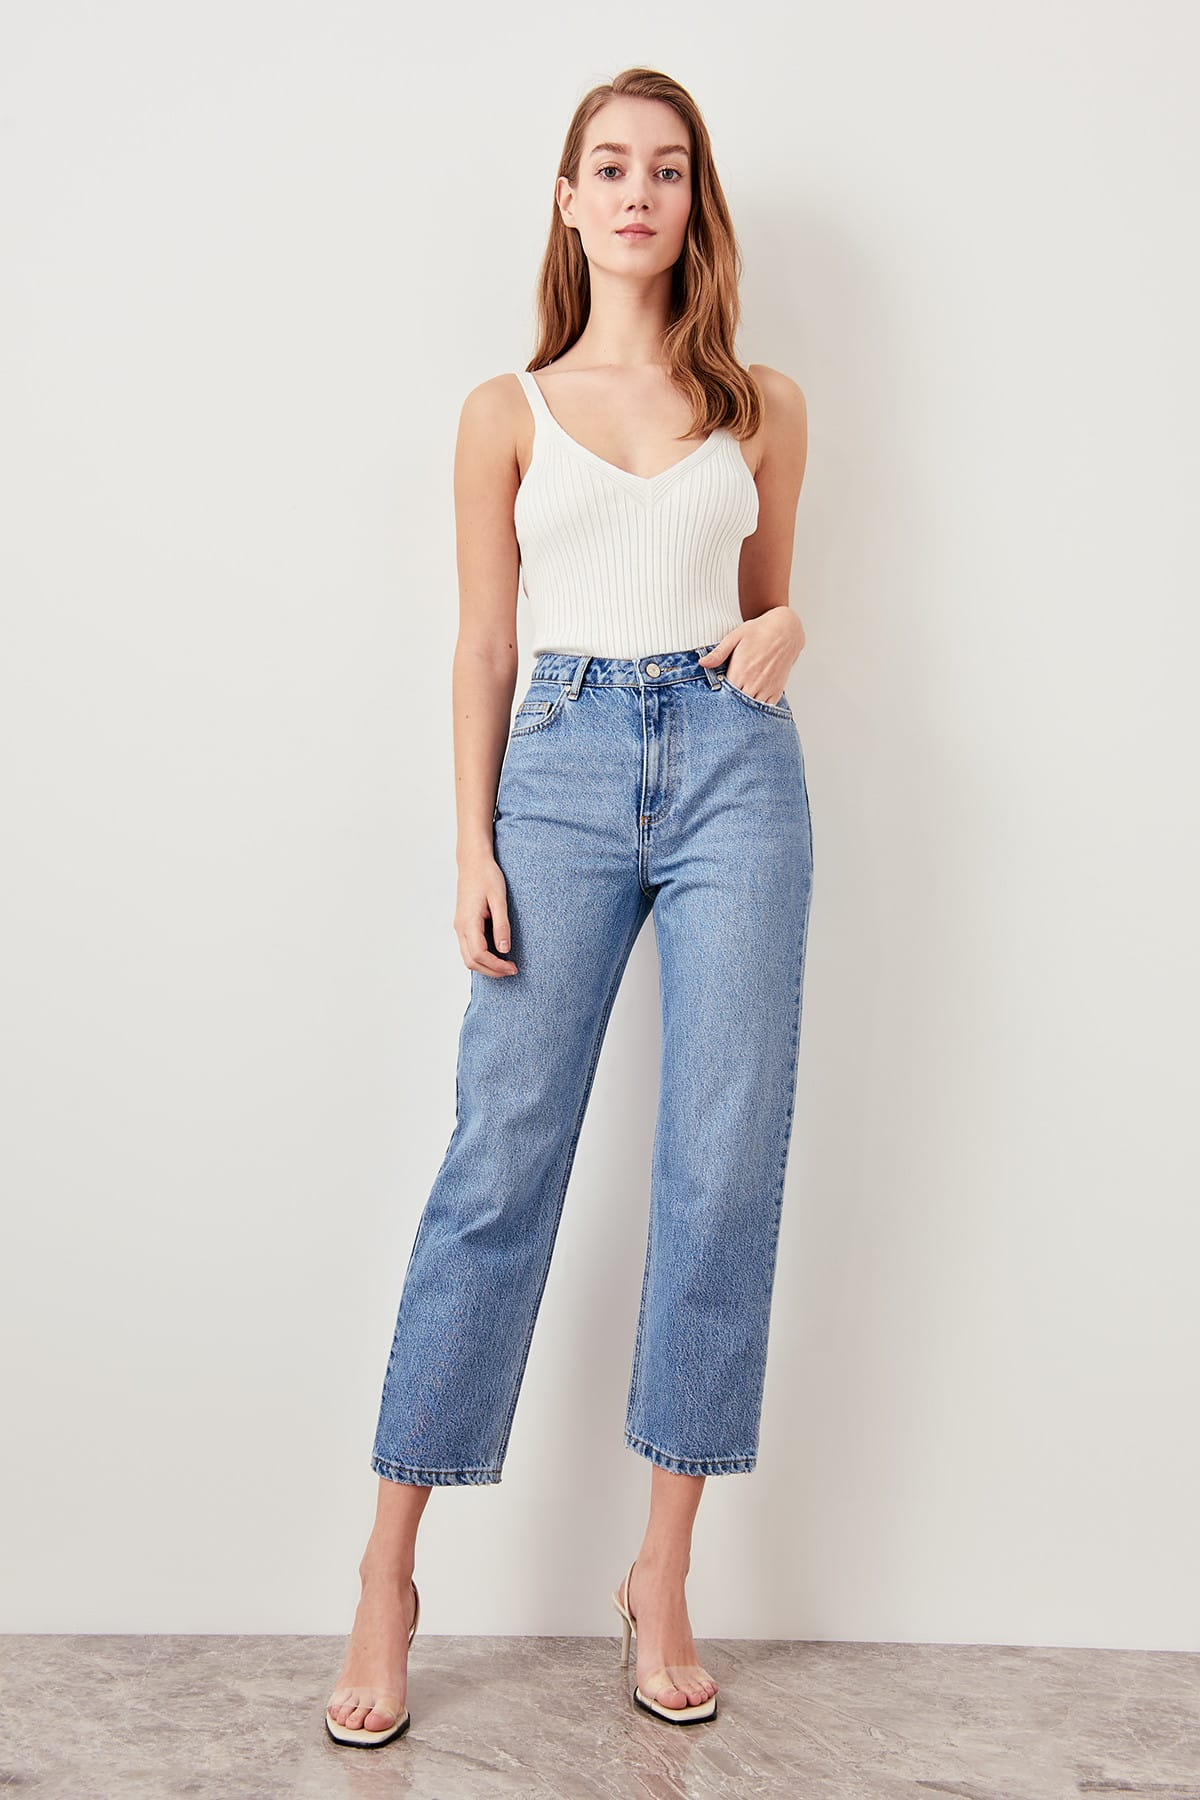 Trendyol Blue Black High Waist Boyfriend Jeans Straight-leg Casual Denim Ankle-length Pant TWOSS19LR0176()